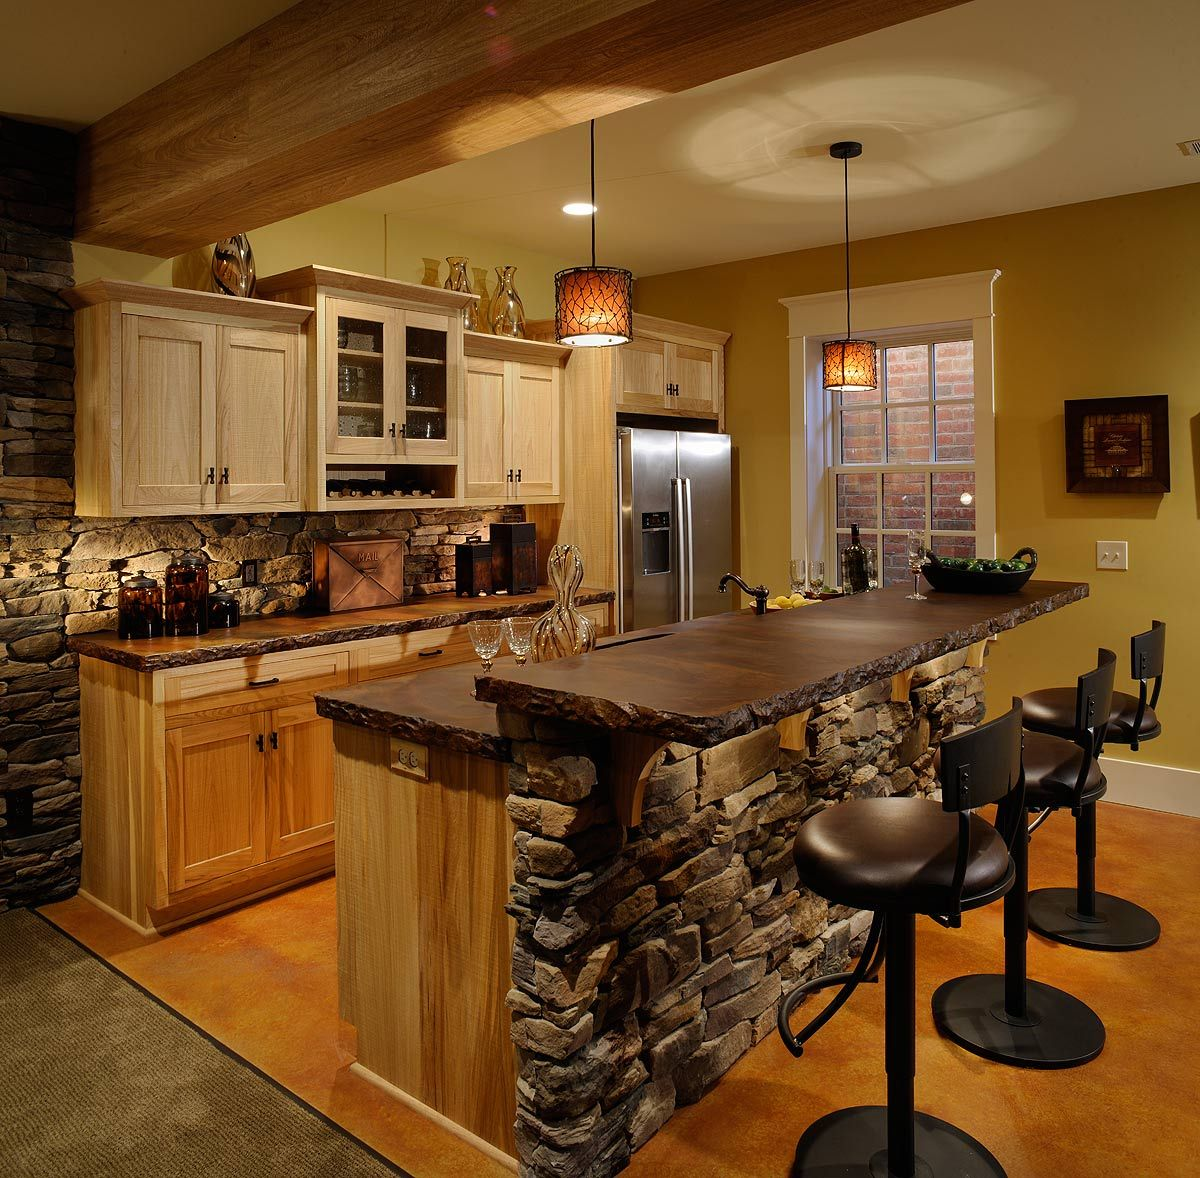 Kitchen Counter Bar Designs Bar Room Ideas For A Kitchen New Home Design Trends Rustic Kitchen Design Country Style Kitchen Rustic Kitchen